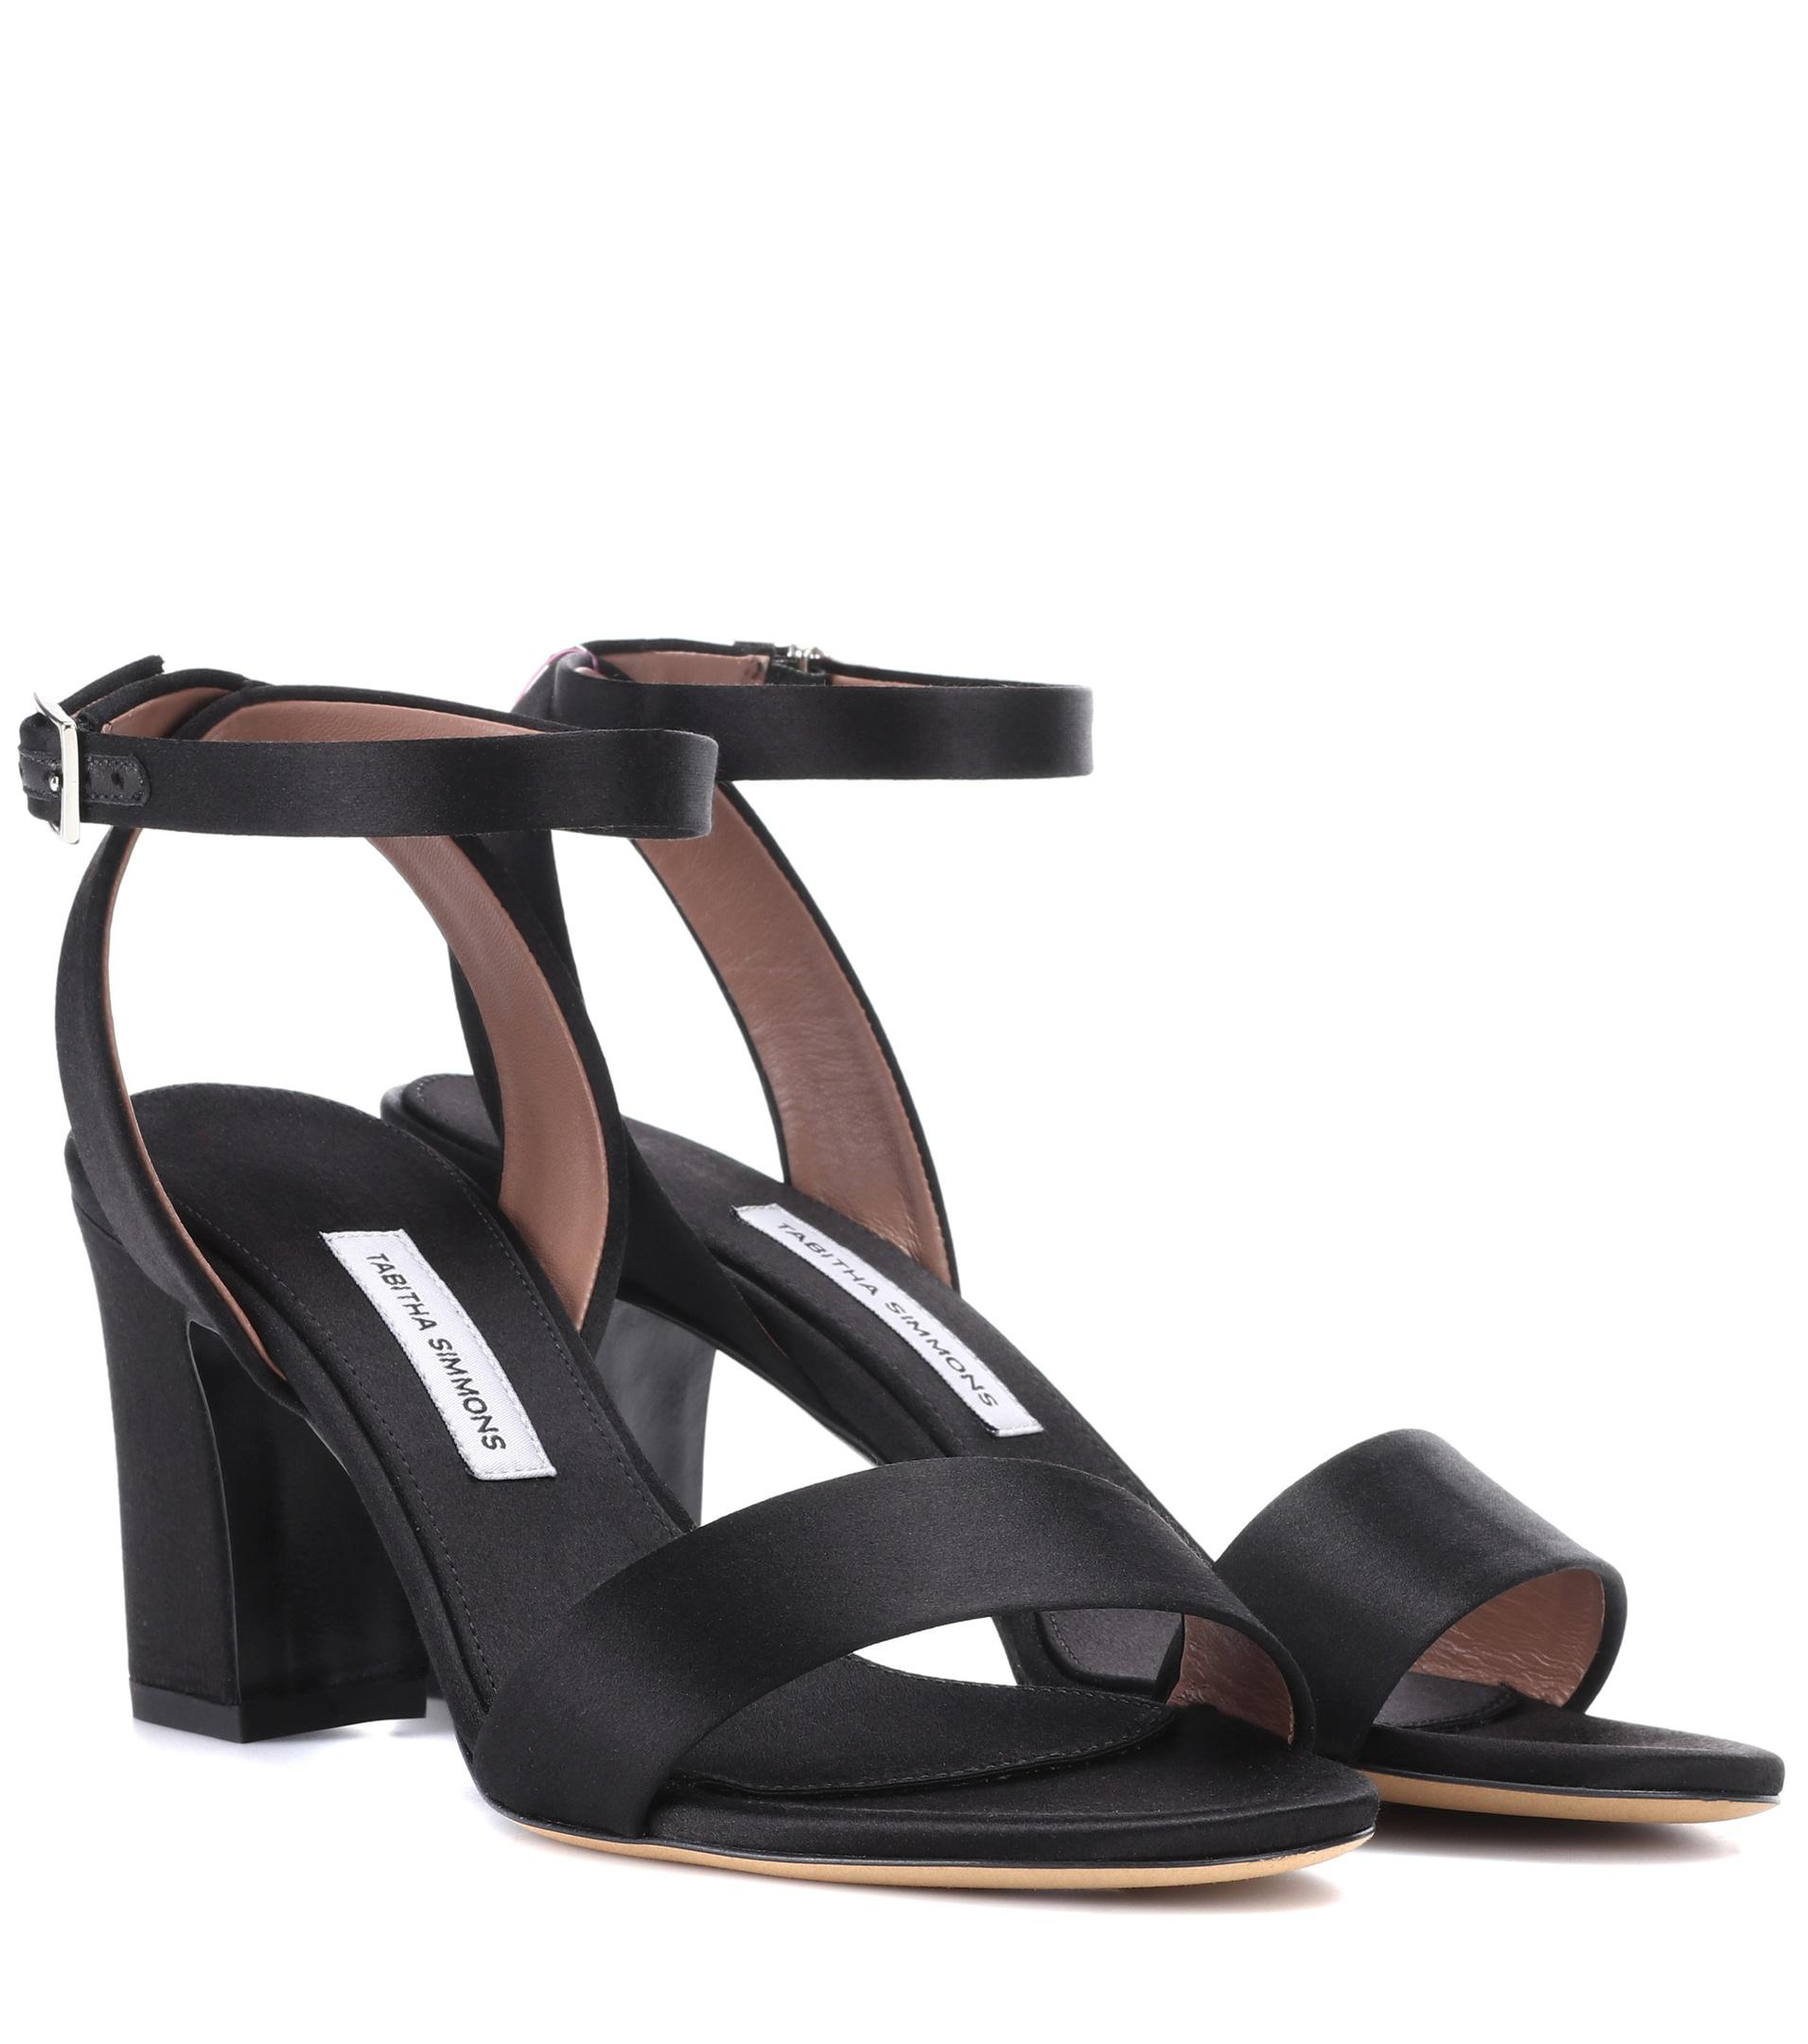 5e9c66524cd Tabitha Simmons - Black Leticia Satin Sandals - Lyst. View fullscreen